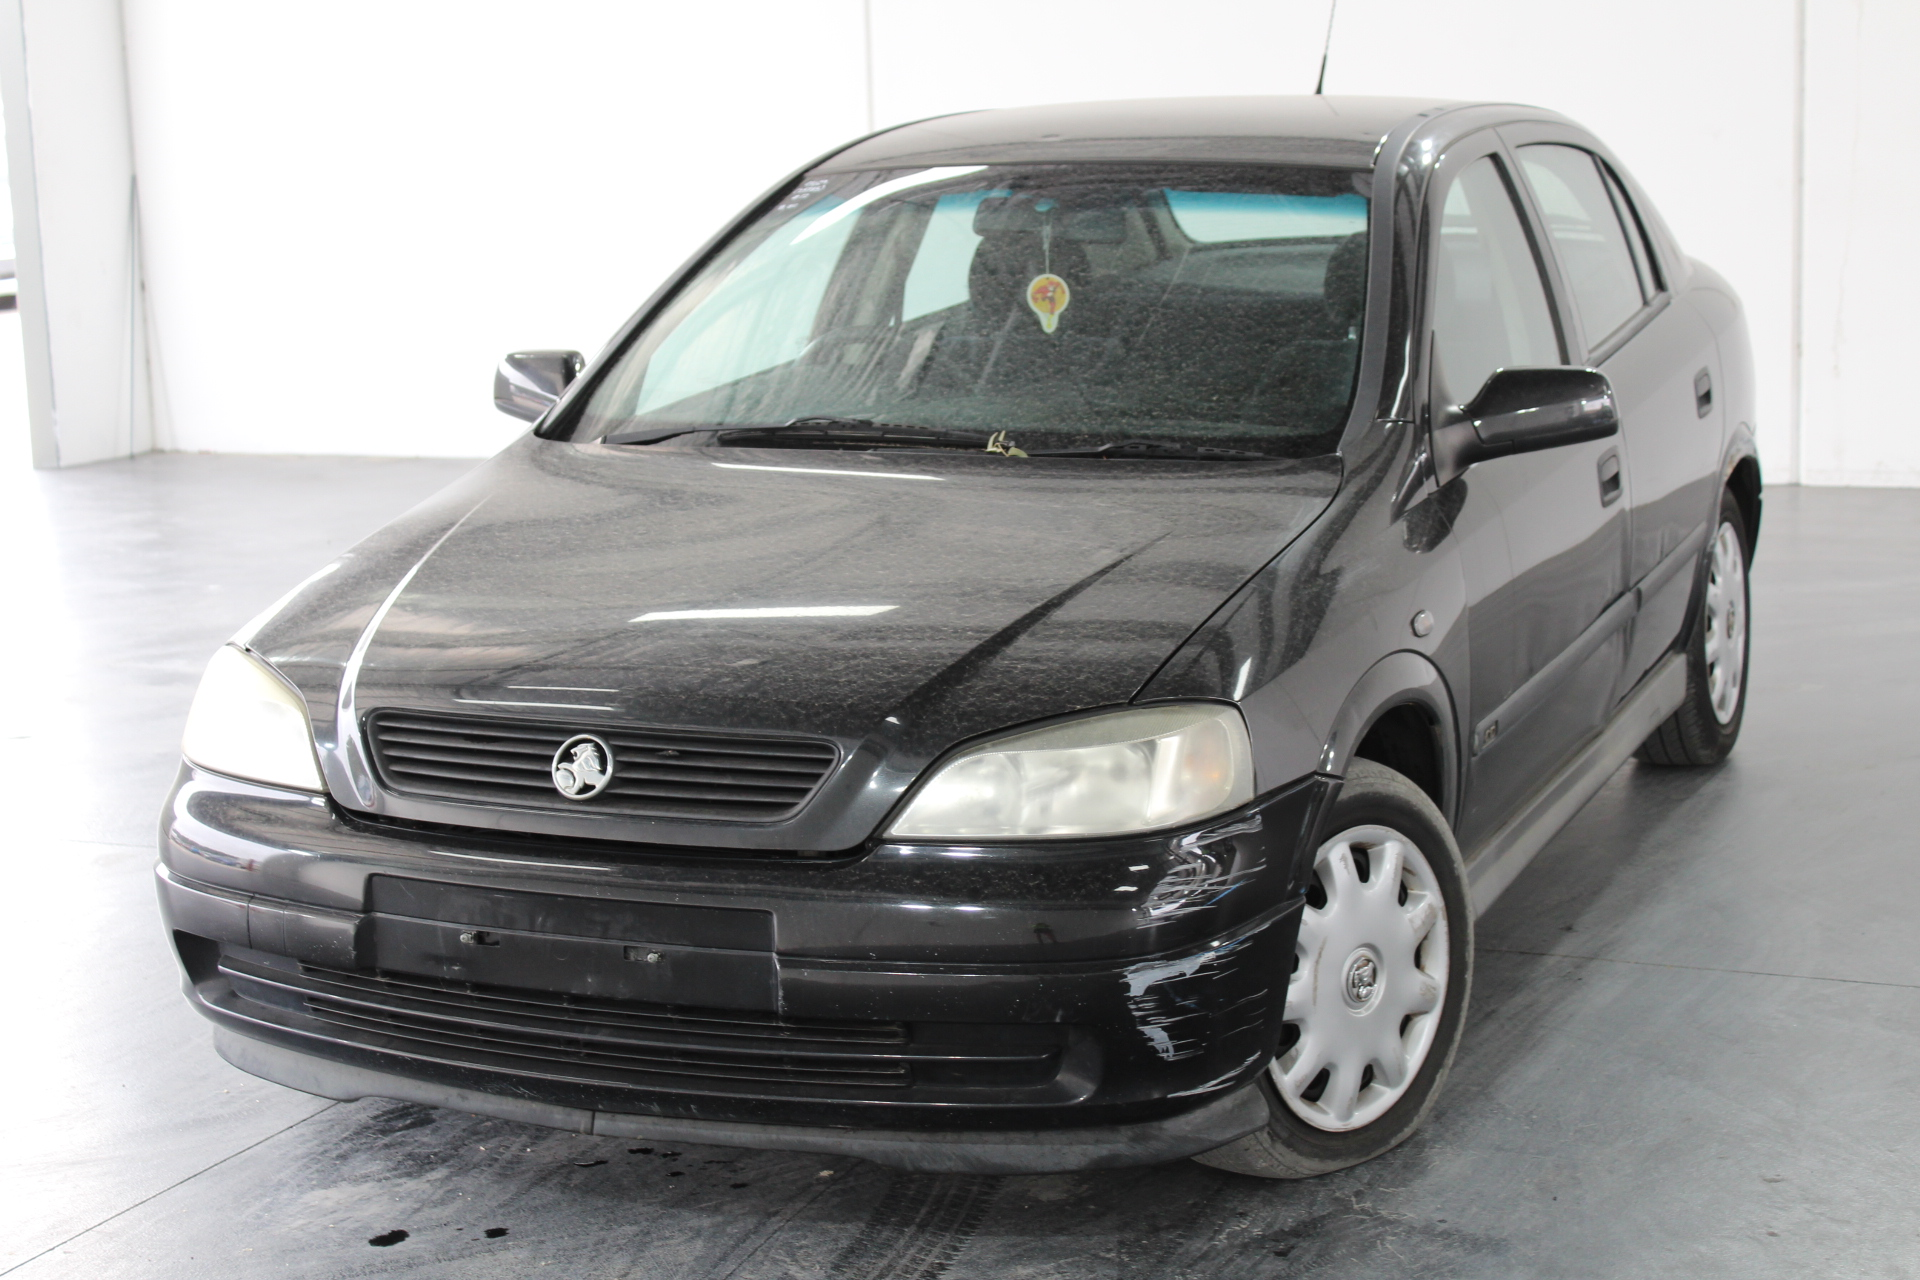 1999 Holden Astra CD TS Automatic Hatchback Auction (0001-3423013) |  GraysOnline Australia